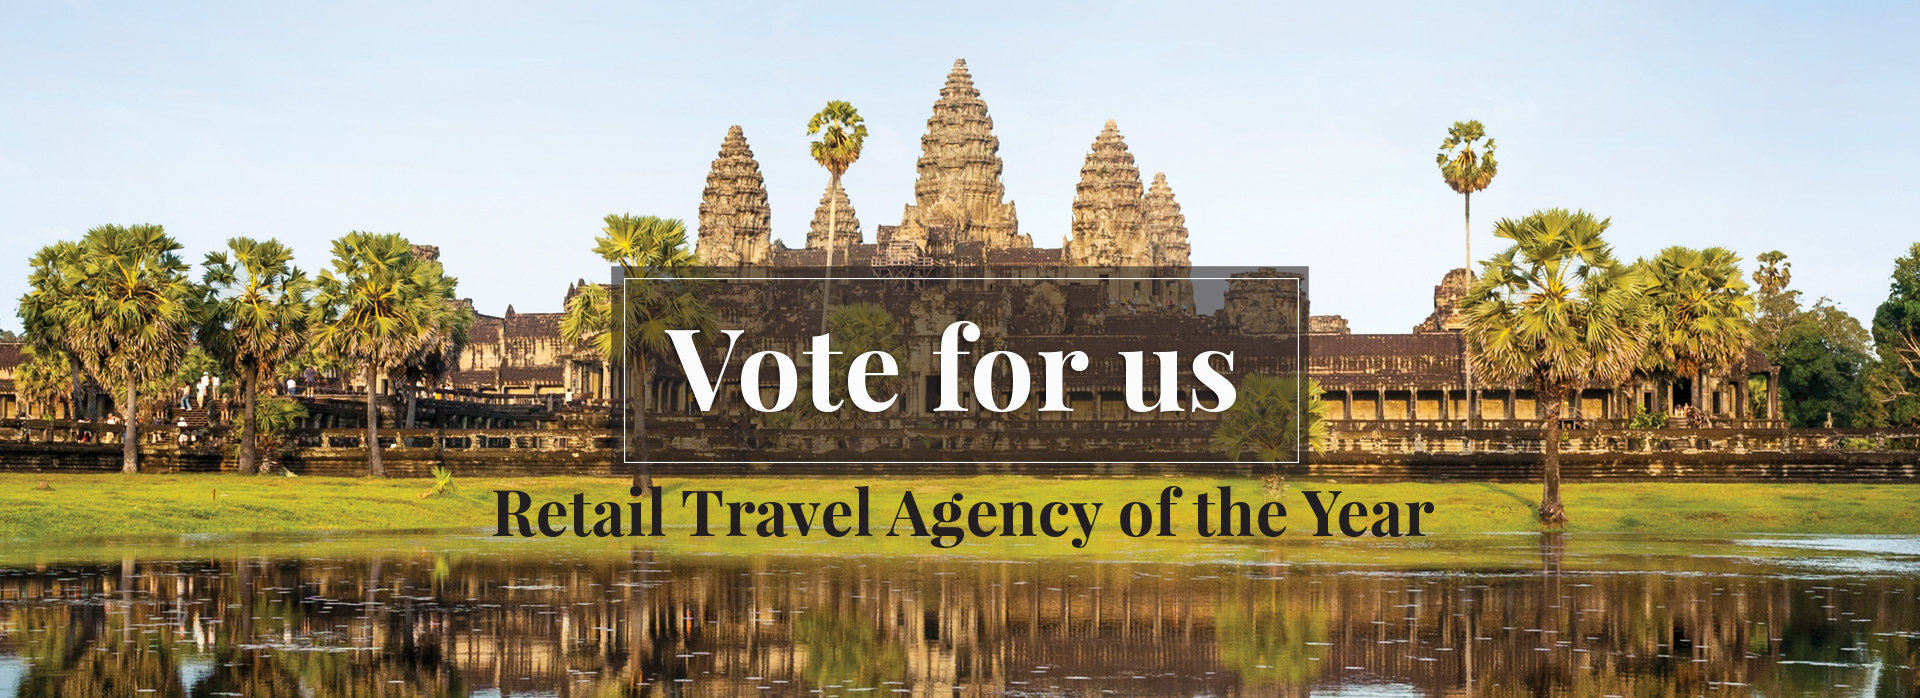 Vote for your favourite Travel Agency and Win!